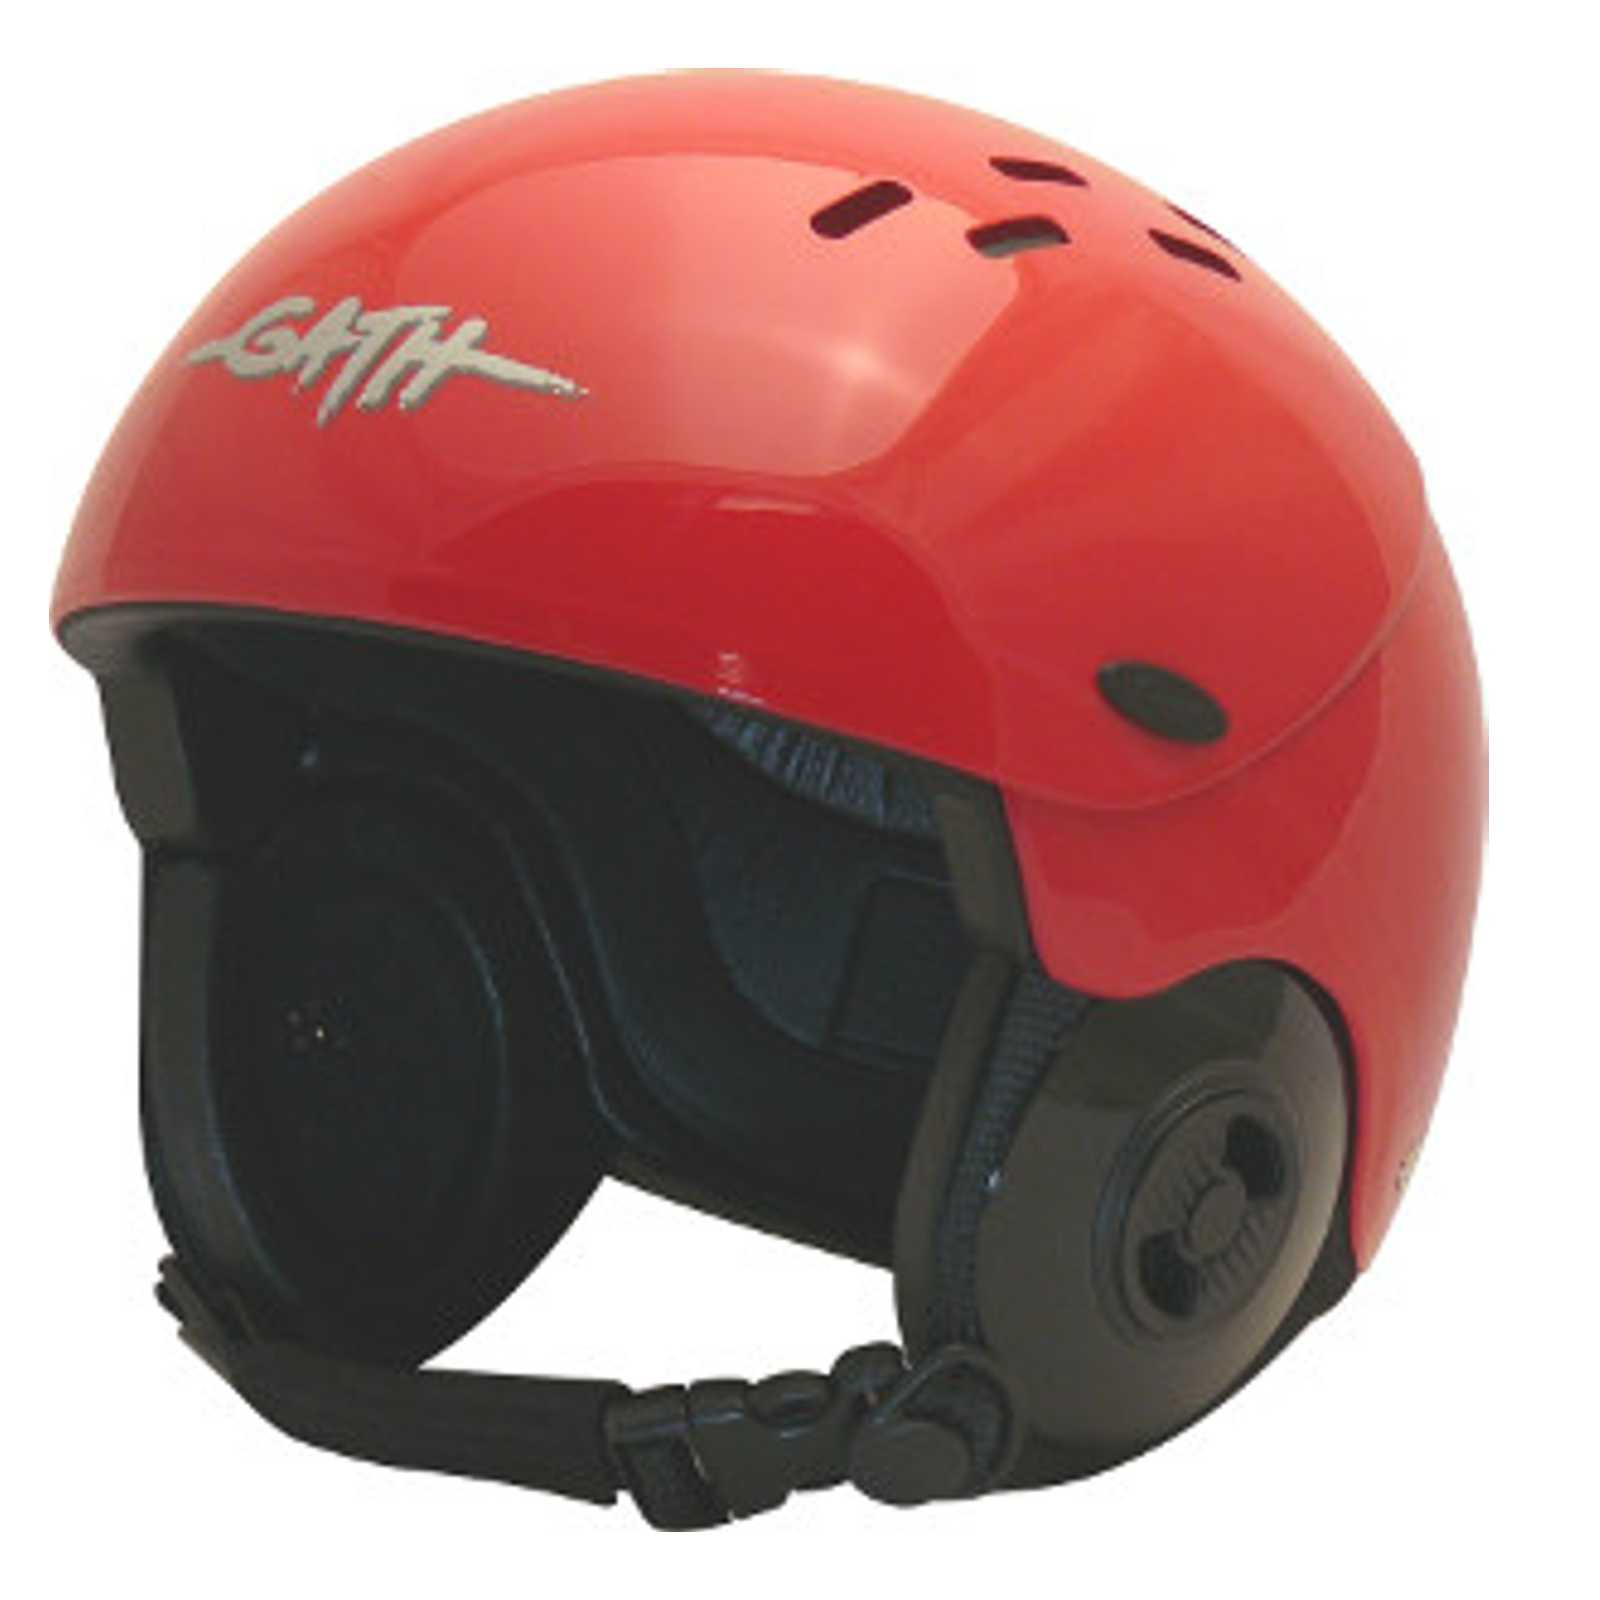 GATH Wassersport Helm GEDI Gr L Rot Safety Red